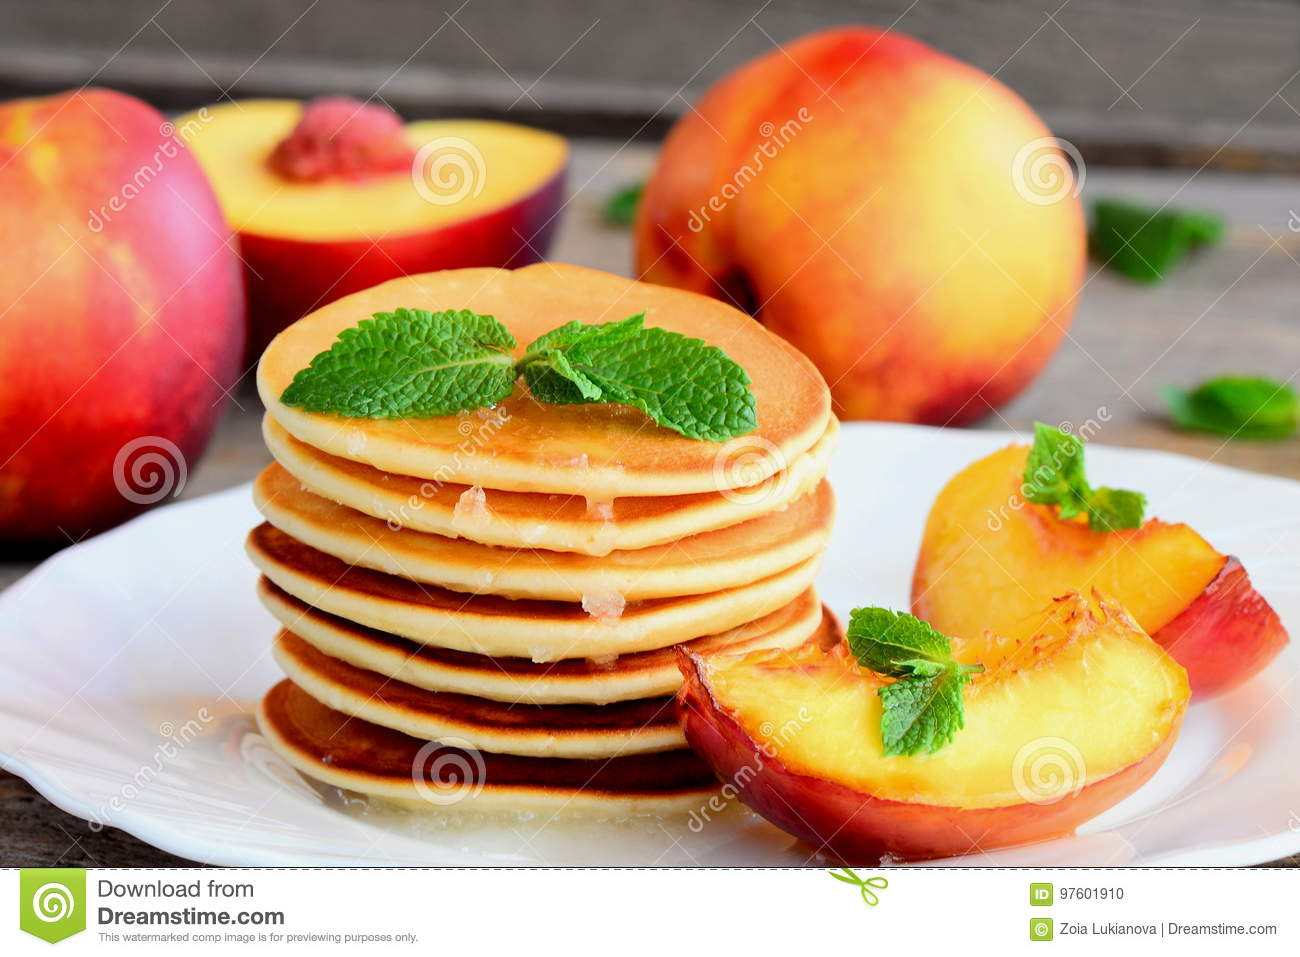 Stack of pancakes with syrup and grilled nectarines on a white plate fried pancakes stack fried pancakes recipe homemade pancakes recipe homemade pancakes photo delicious pancakes idea pancakes with fruit ccuart Images